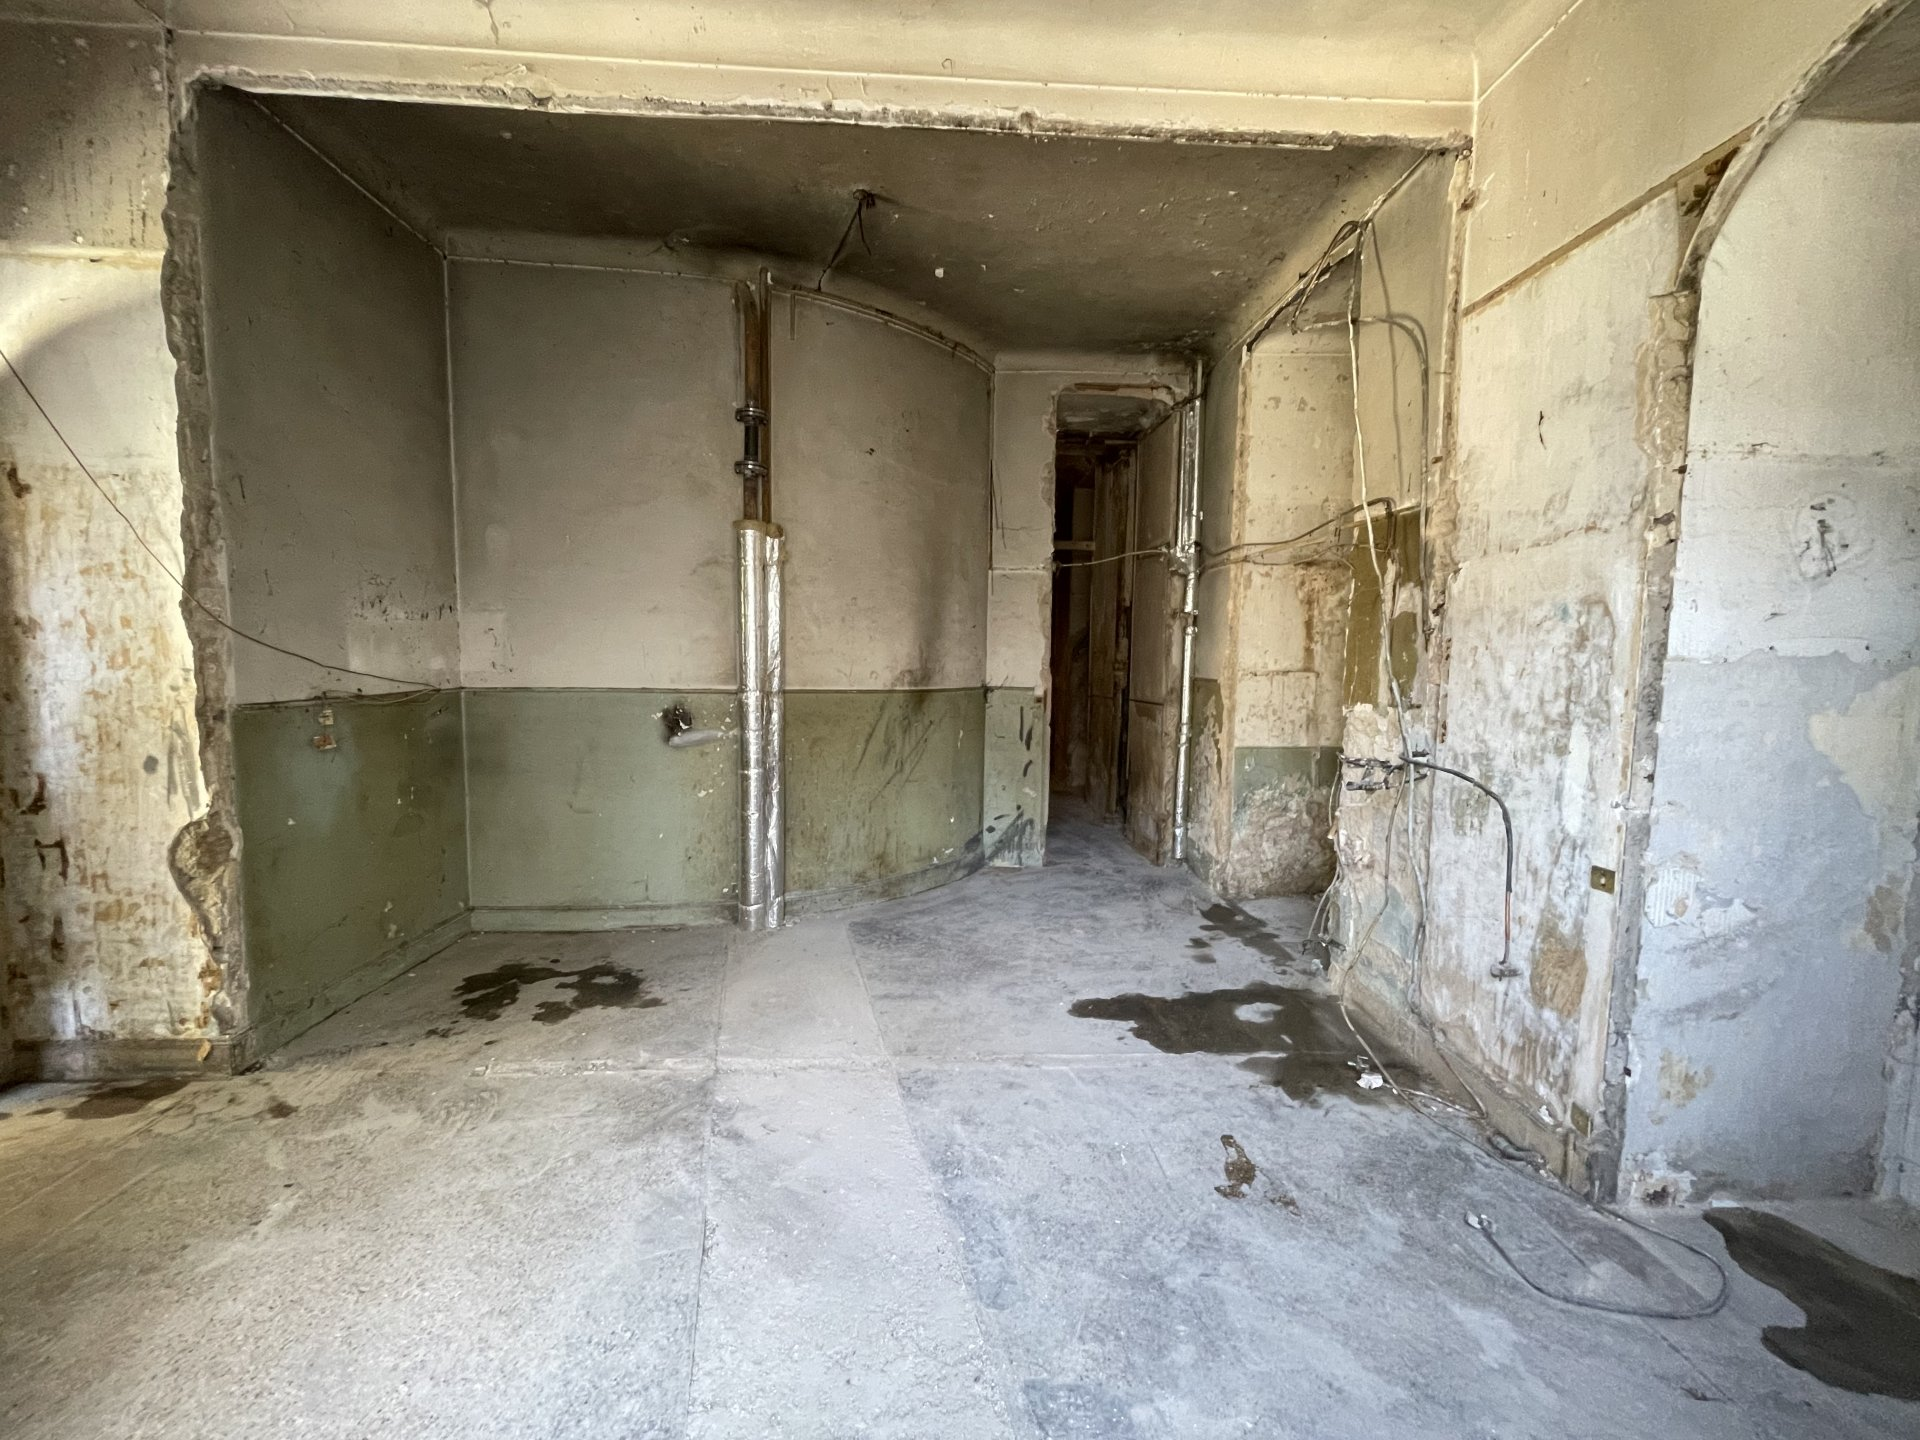 One bedroom to renovate